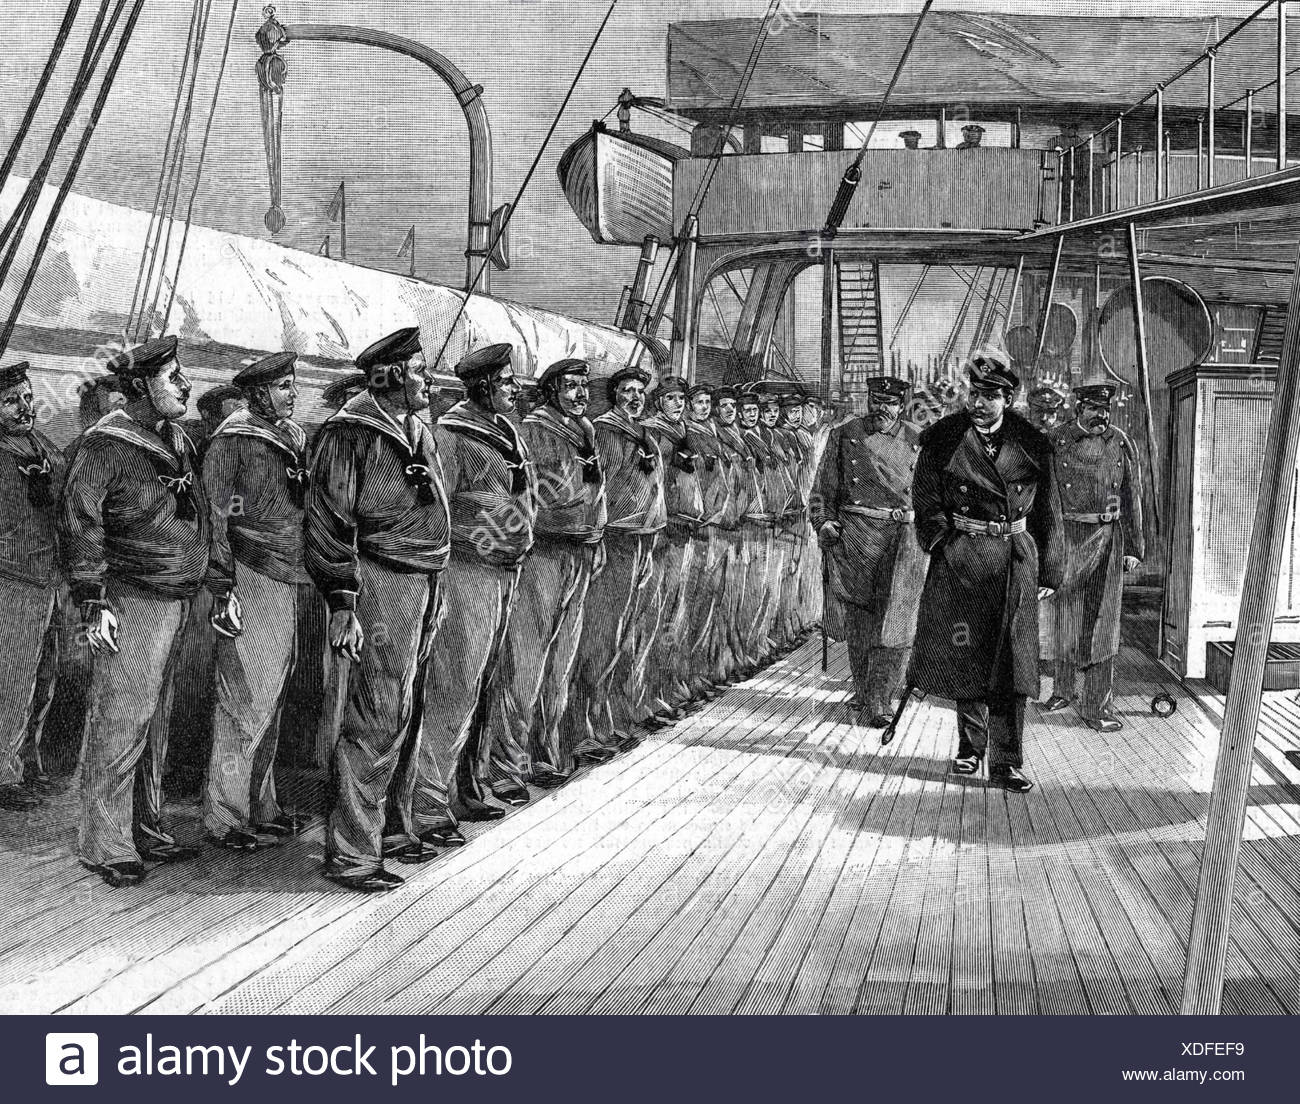 William II, 27.1.1859 - 4.6.1941, Emperor of Germany , Additional-Rights-Clearances-NA - Stock Image